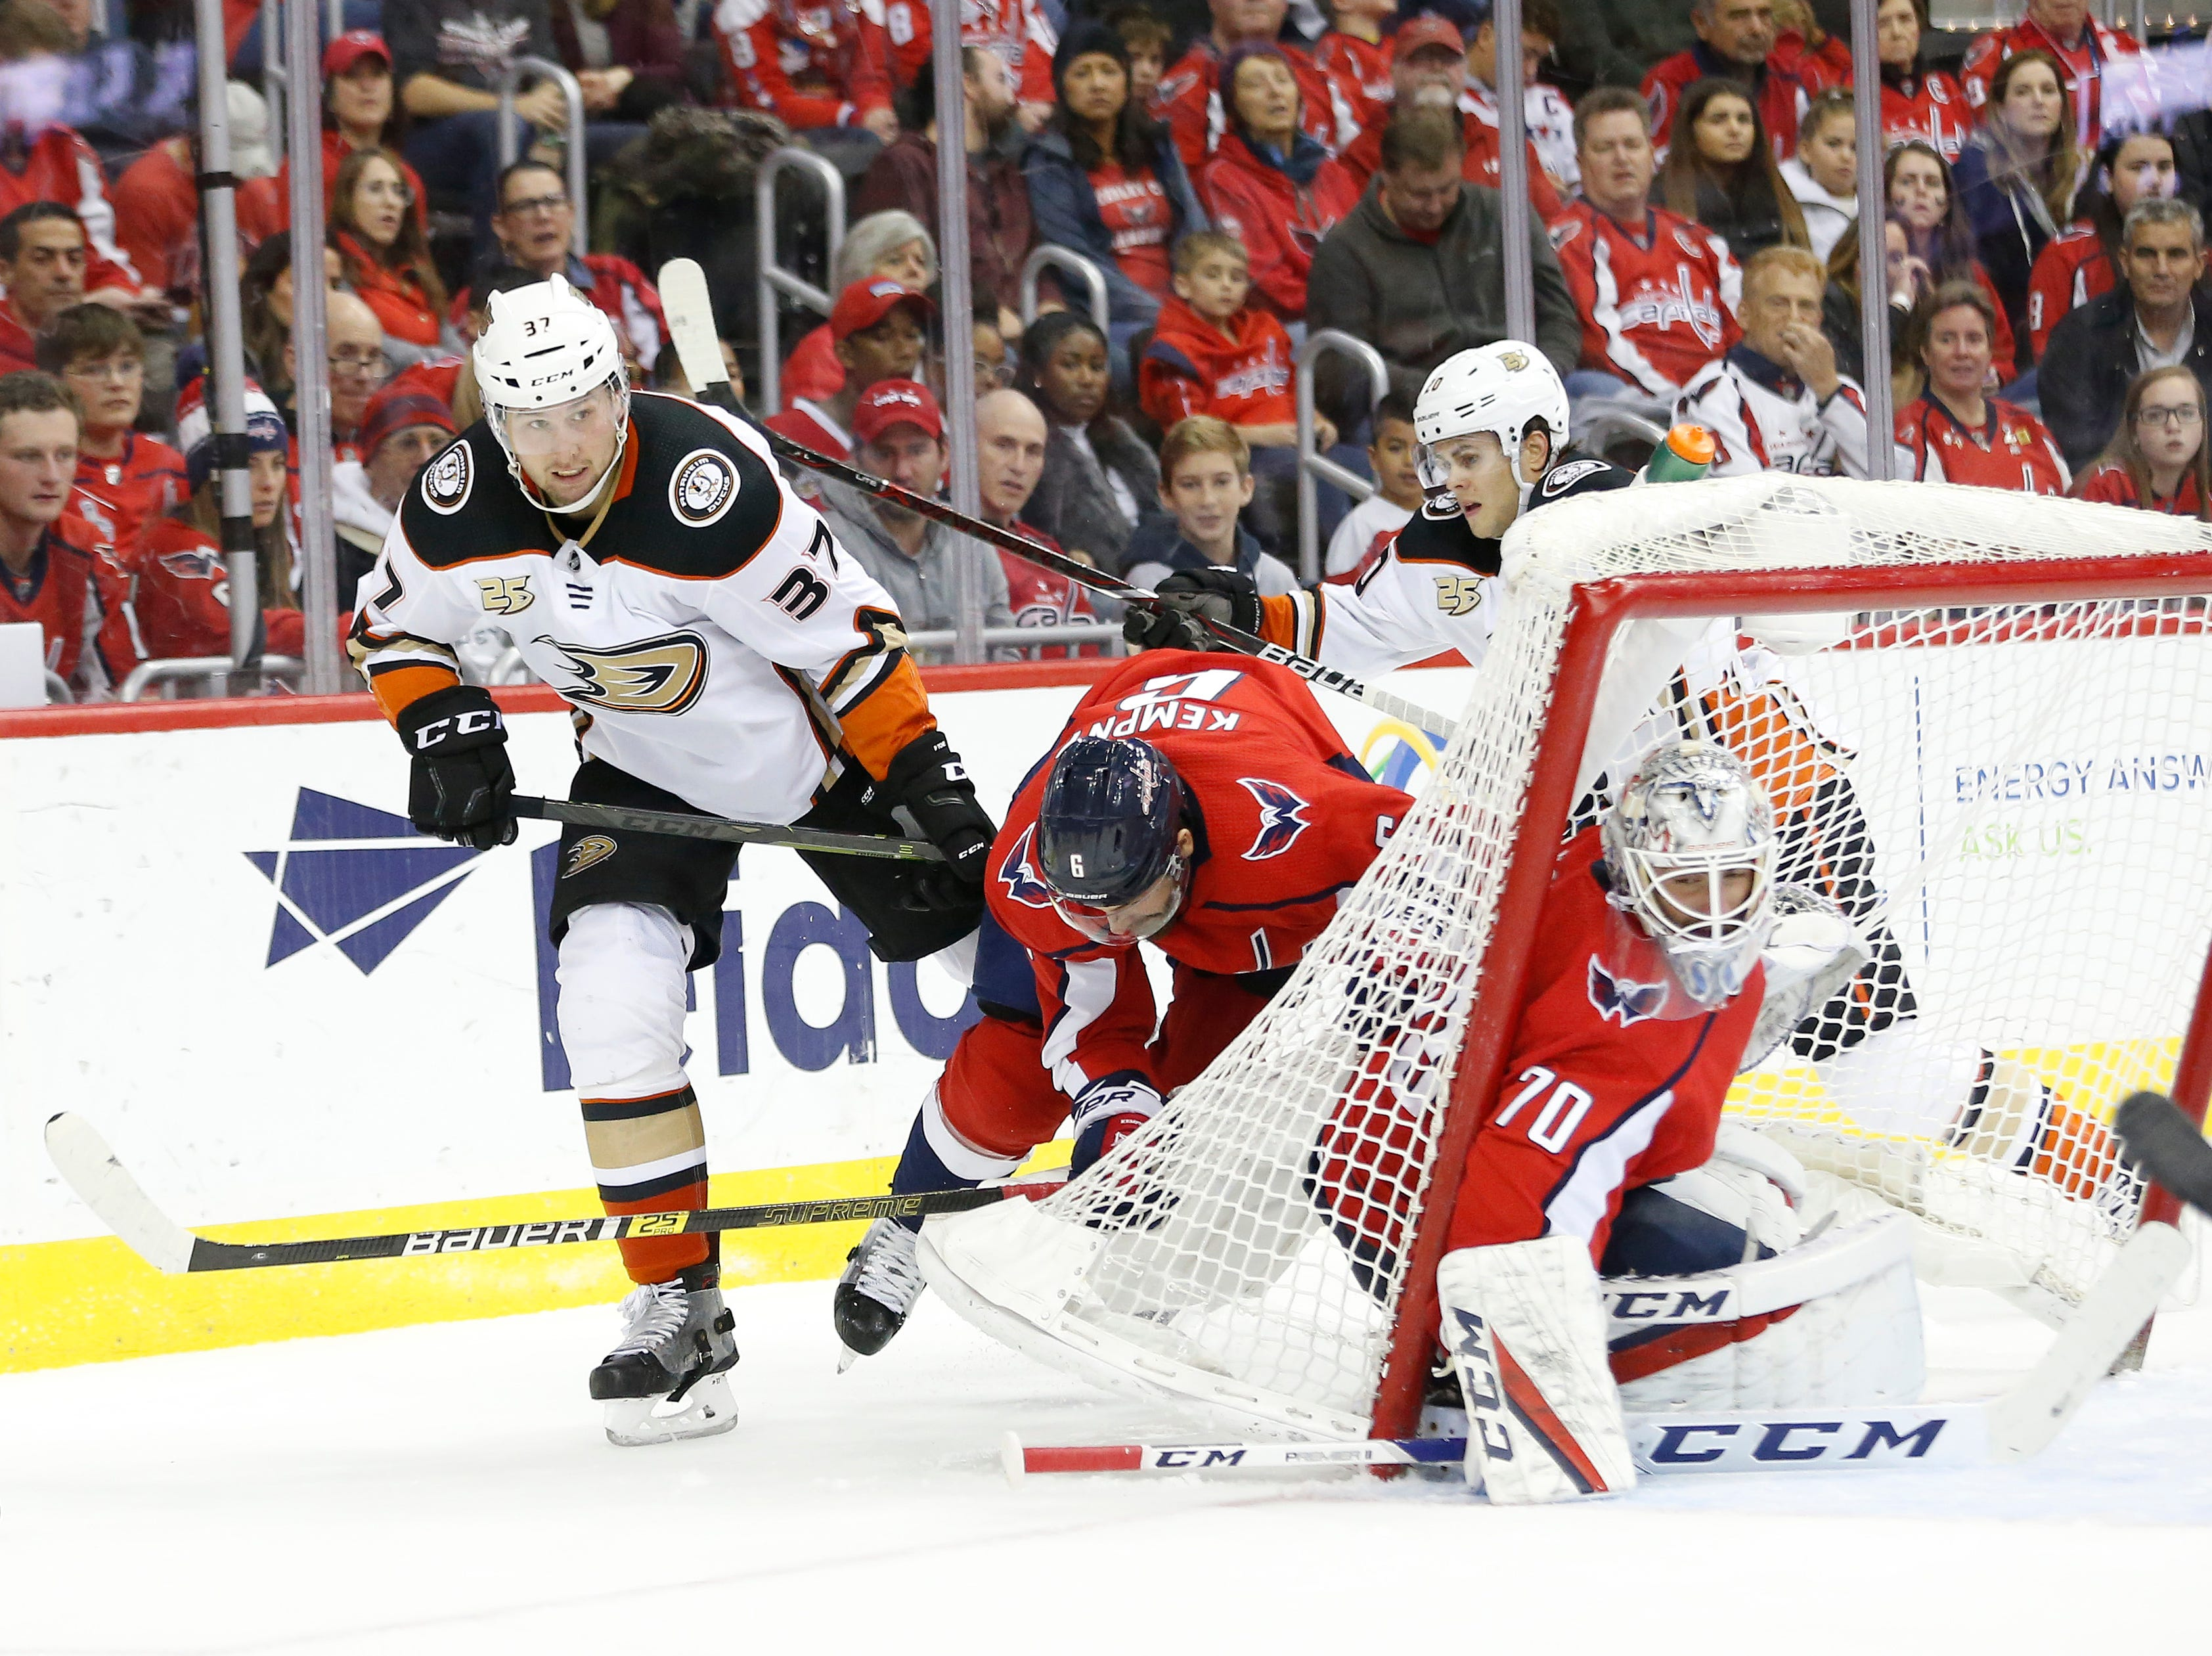 Dec. 2: Anaheim Ducks left wing Nick Ritchie (37) checks Washington Capitals defenseman Michal Kempny (6) into the net of Capitals goaltender Braden Holtby (70) in the second period at Capital One Arena.